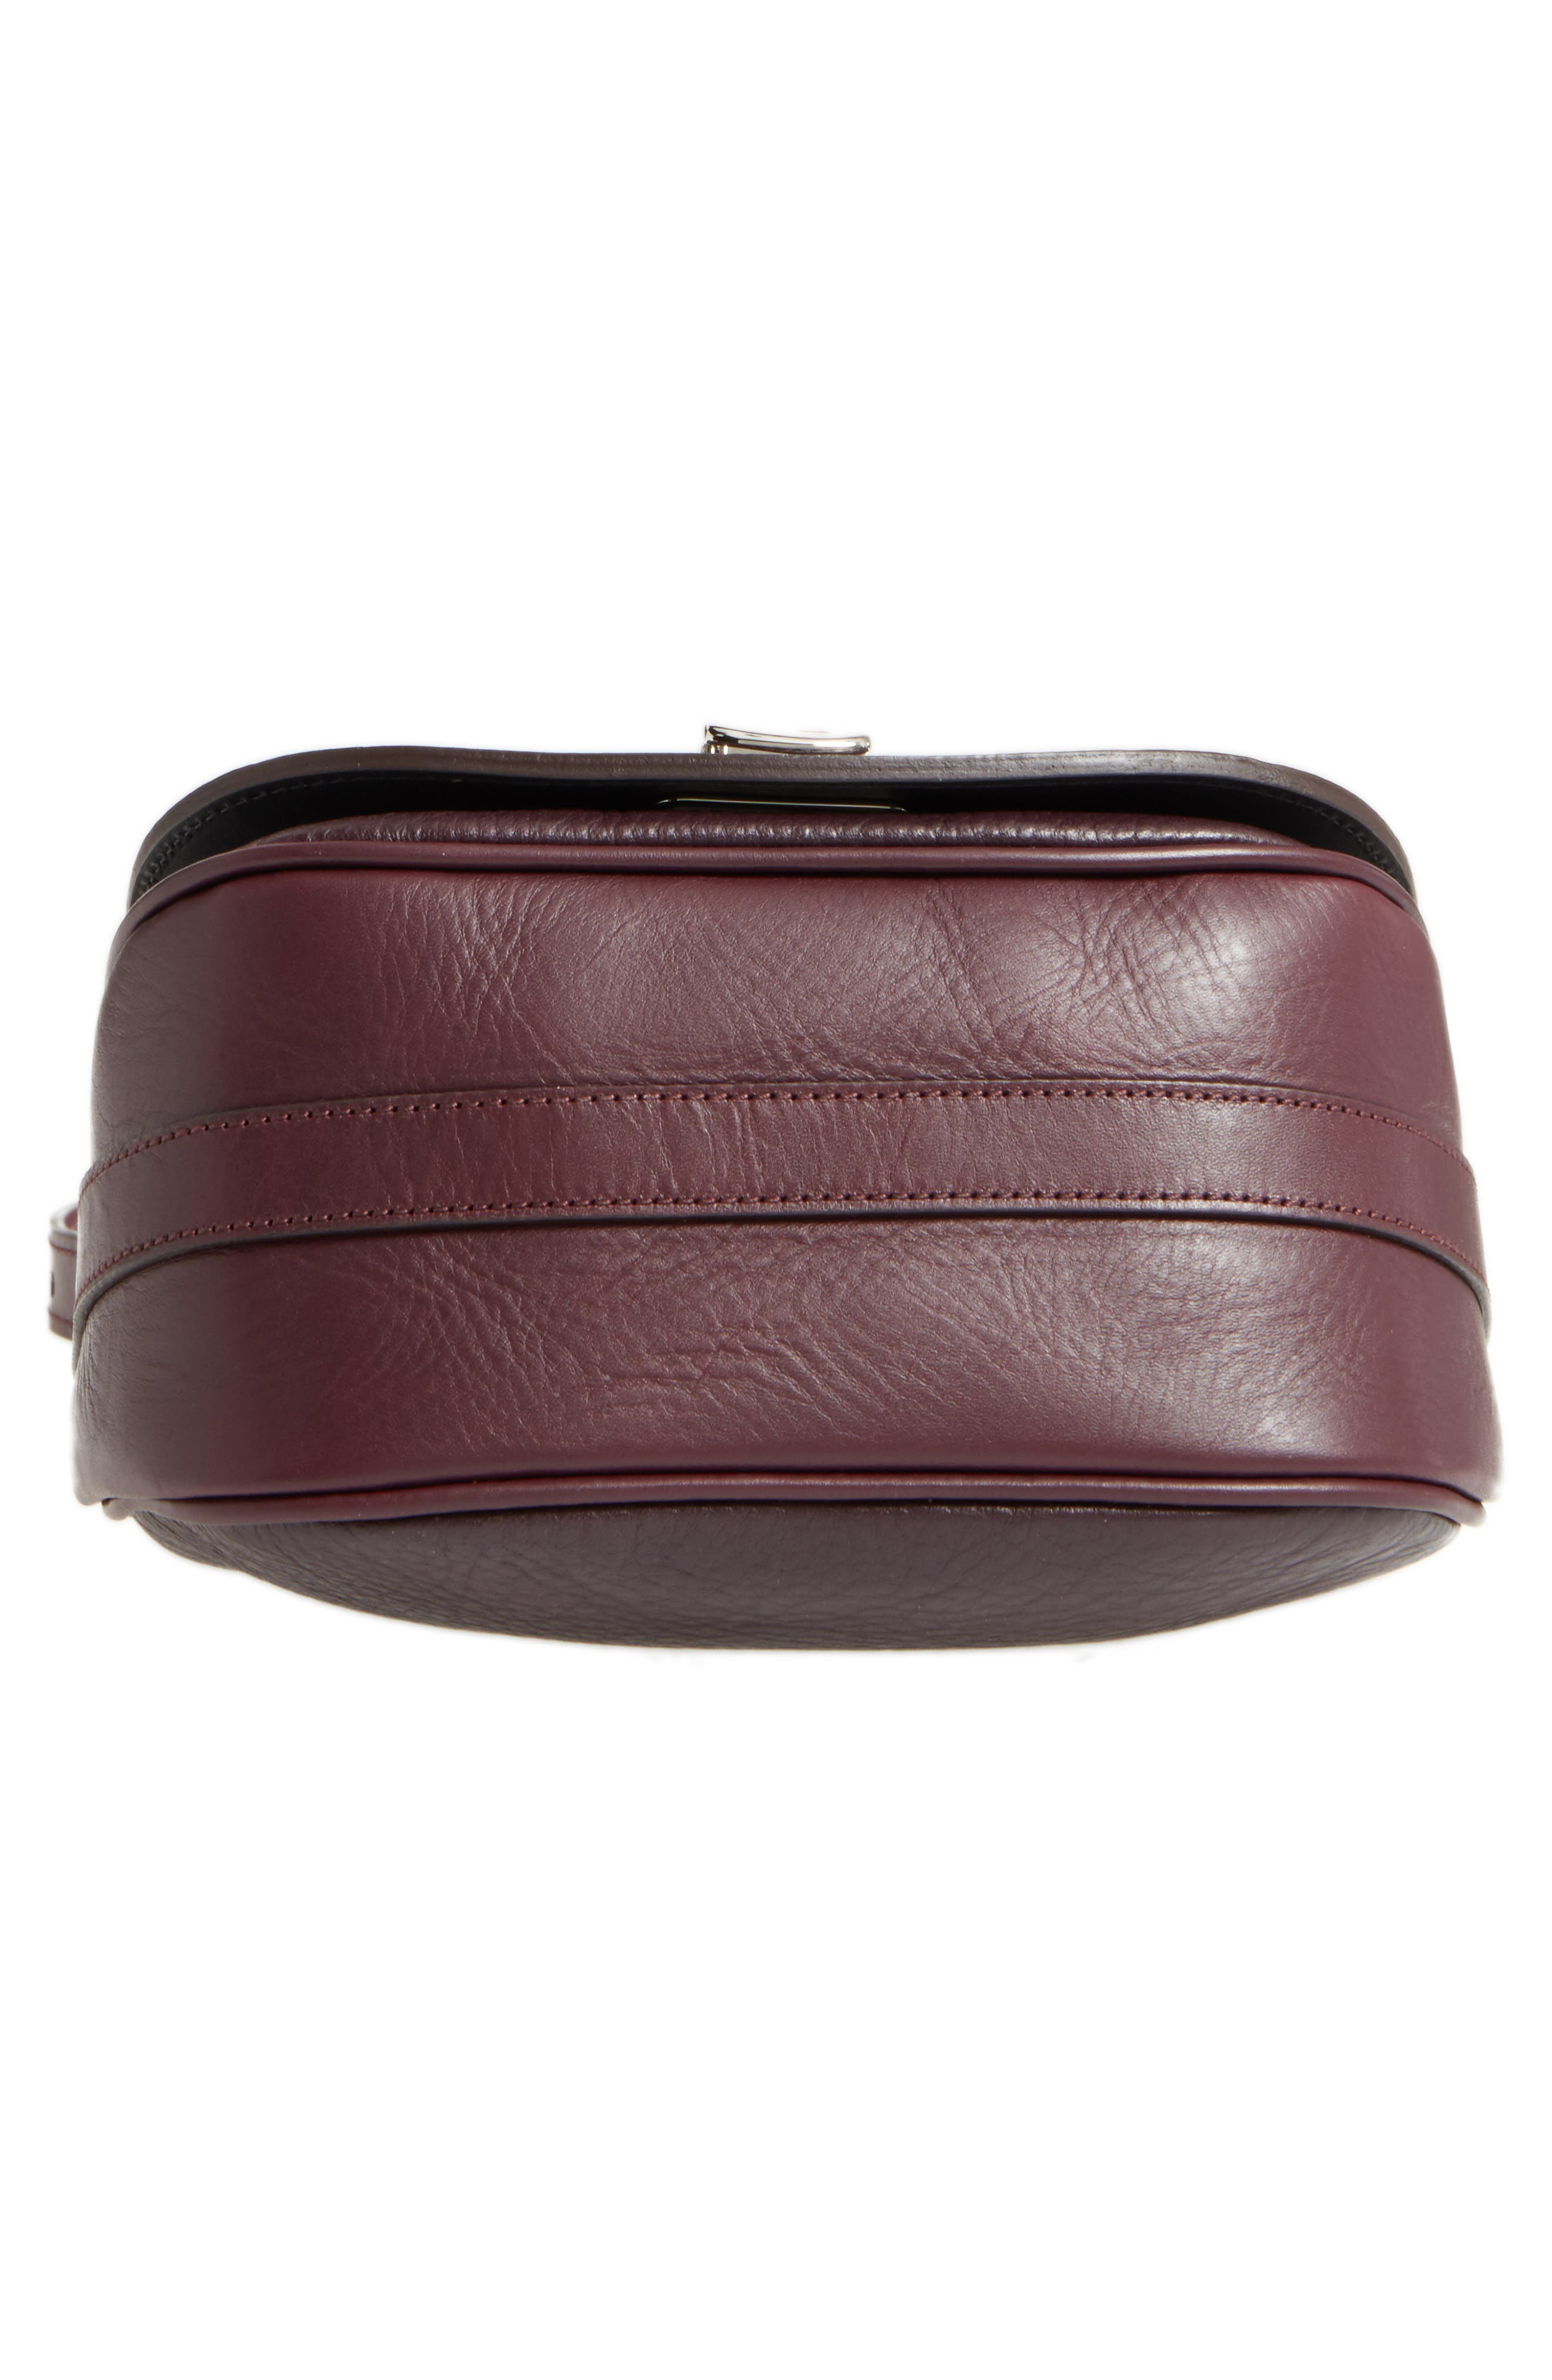 Calfskin Leather Shoulder Bag,                             Alternate thumbnail 6, color,                             Aubergine